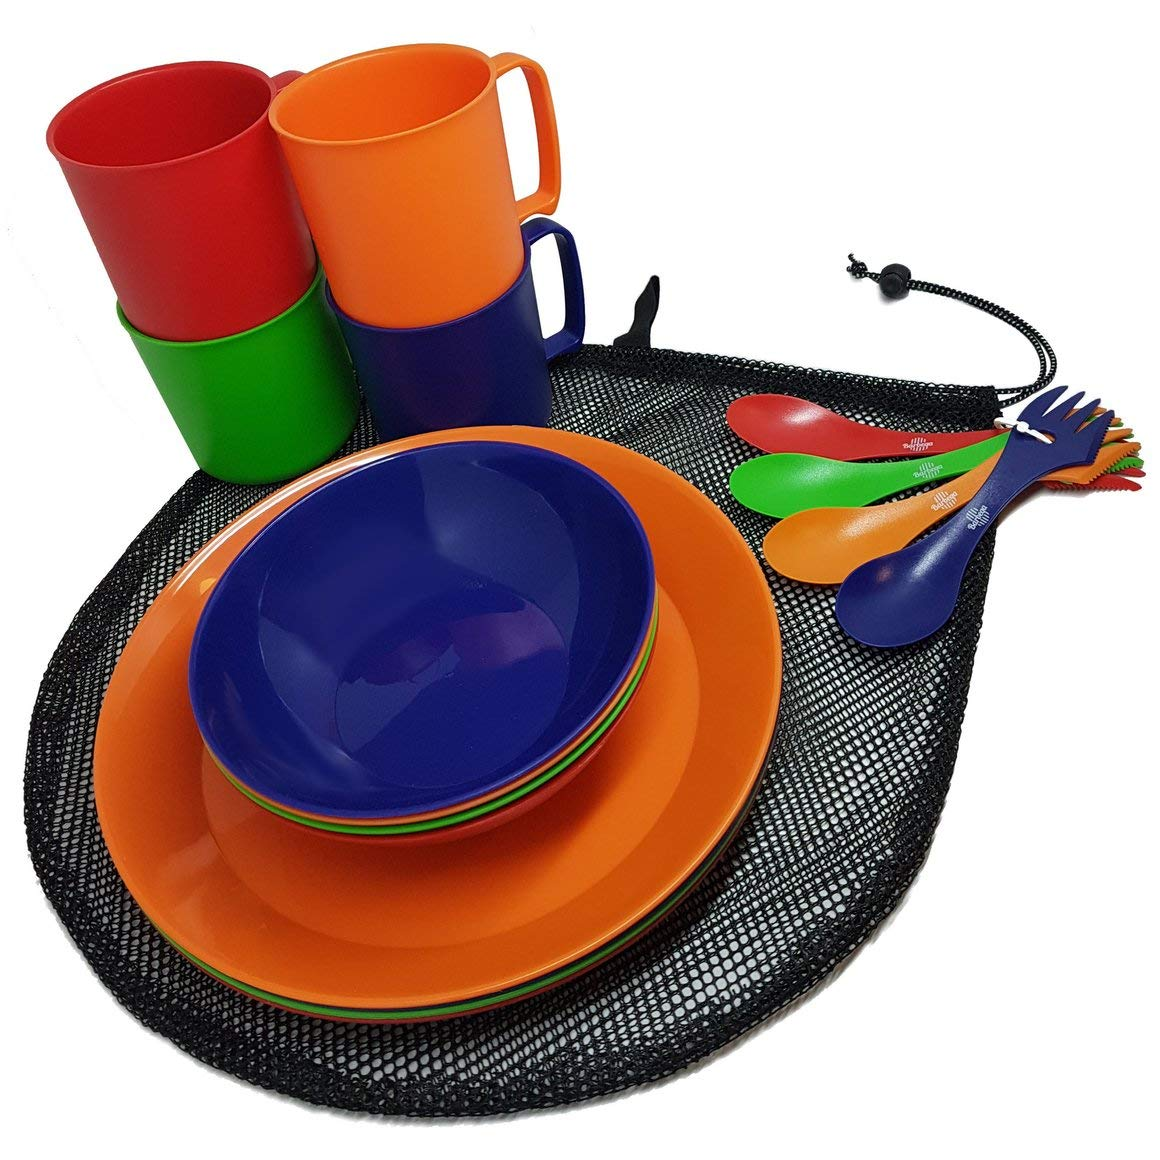 Camping Mess Kit 4 Person Dinnerware Set with Mesh Bag - Complete Dish Set Includes Plates, Bowls, Cups and Sporks - Perfect for Backpacking, Hiking, Picnic and Much More by Barbeqa